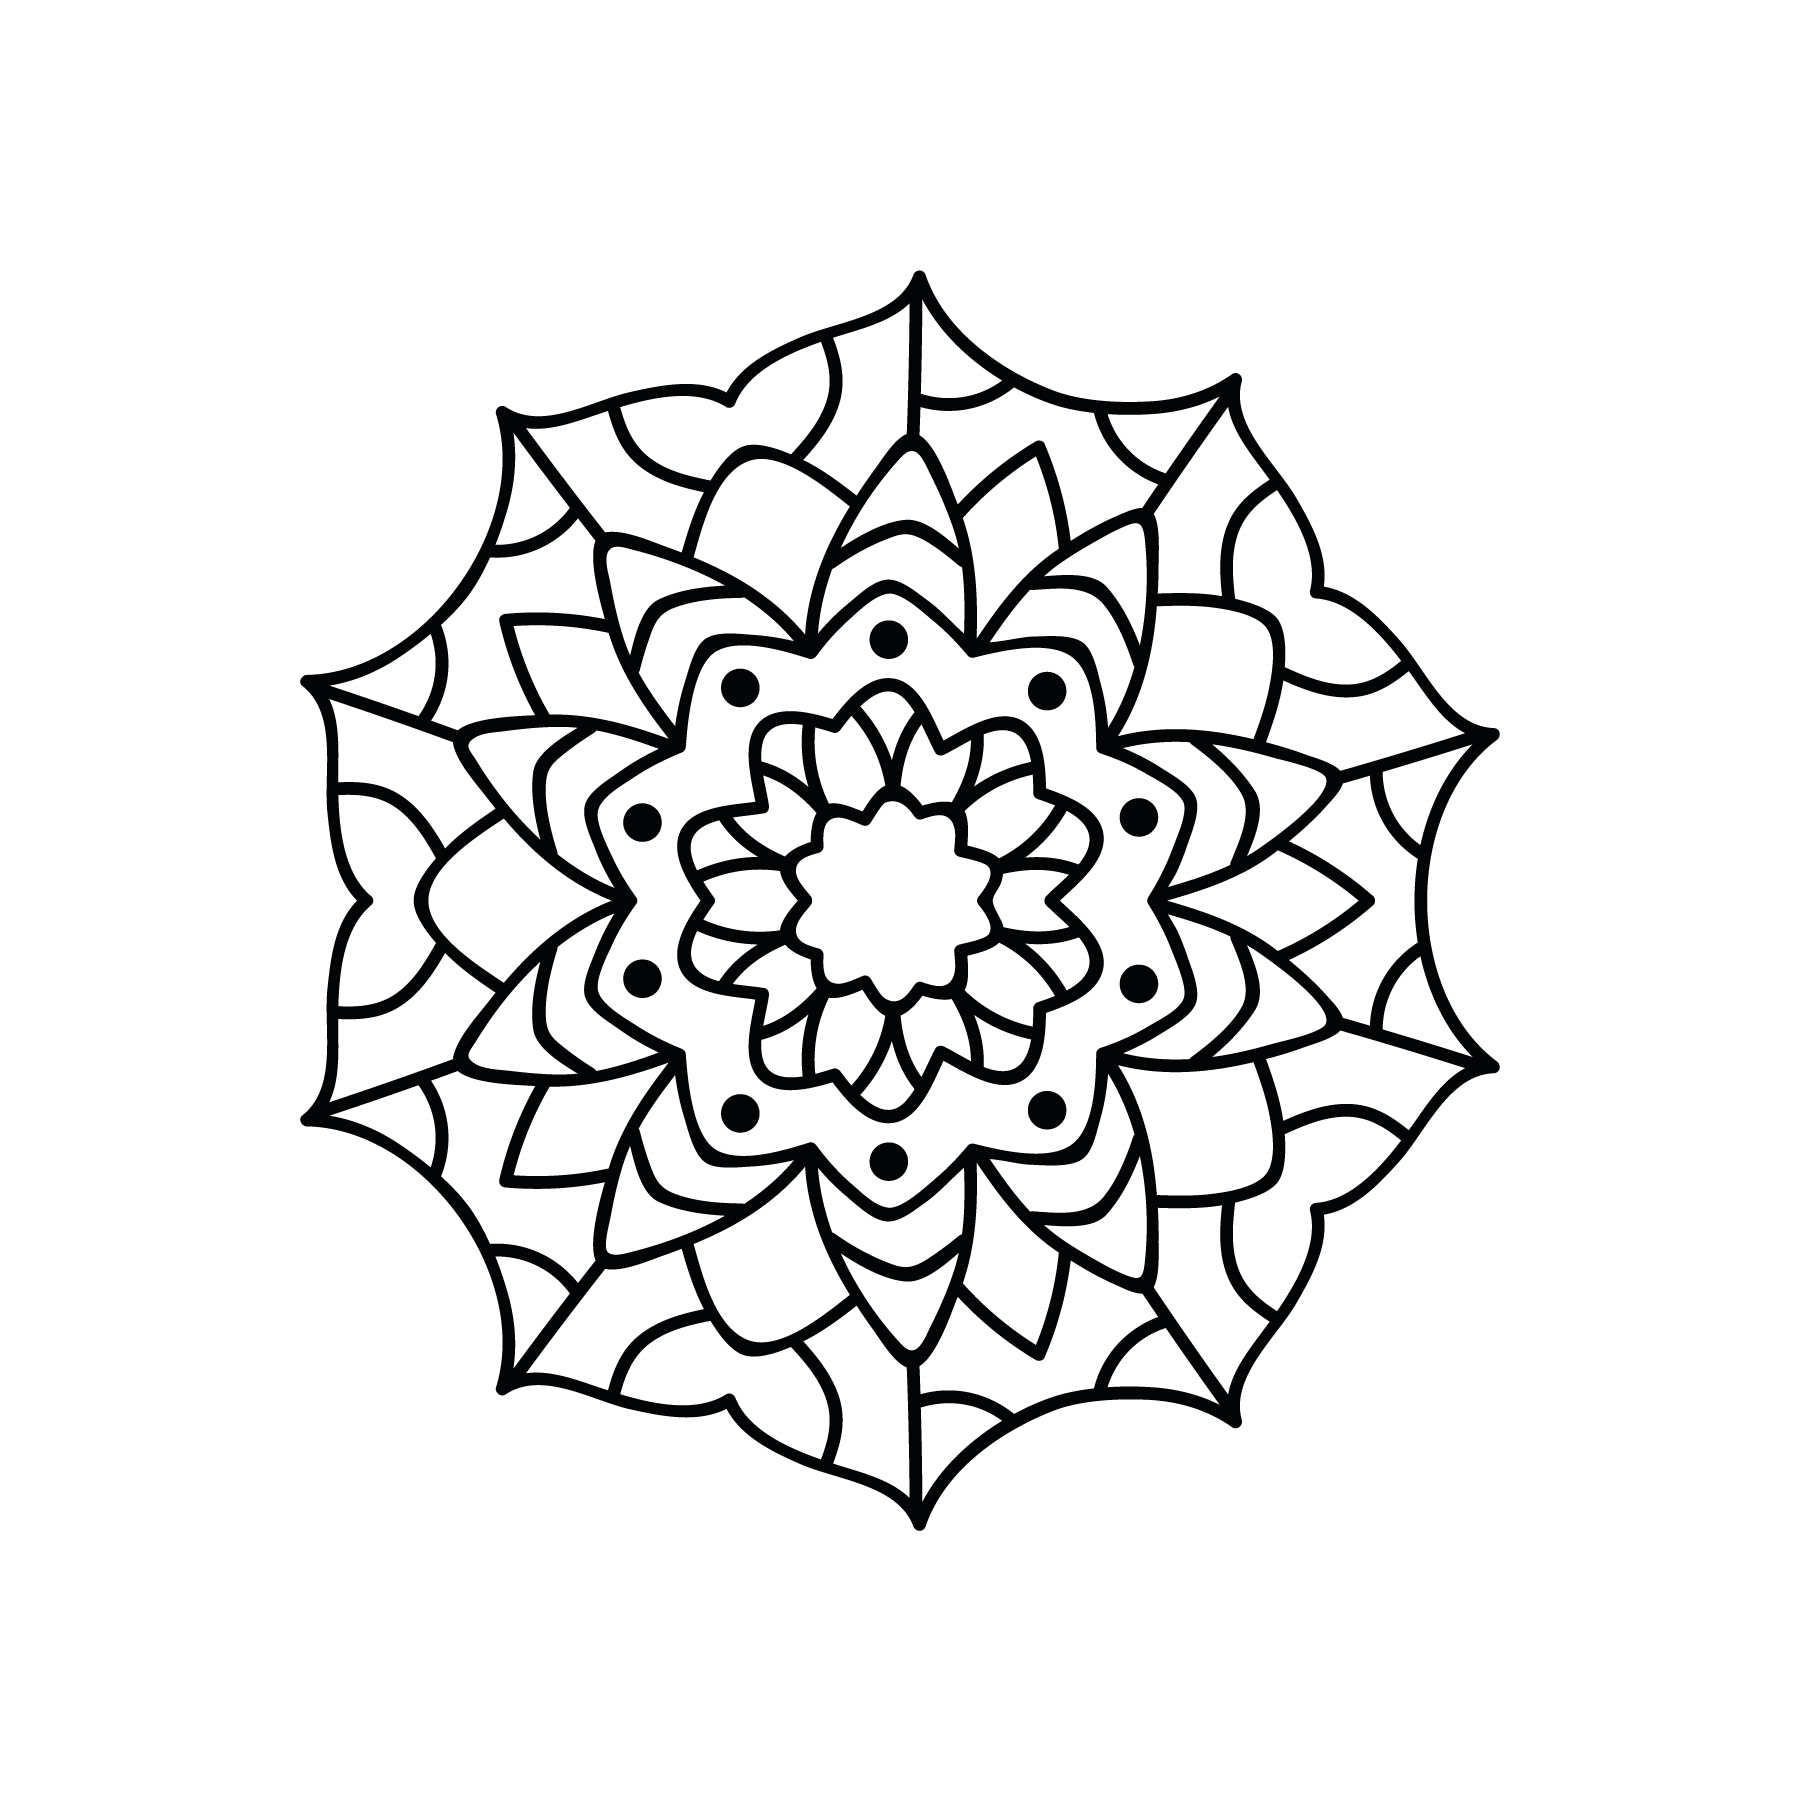 Circle Mandala Ornament Free DXF File